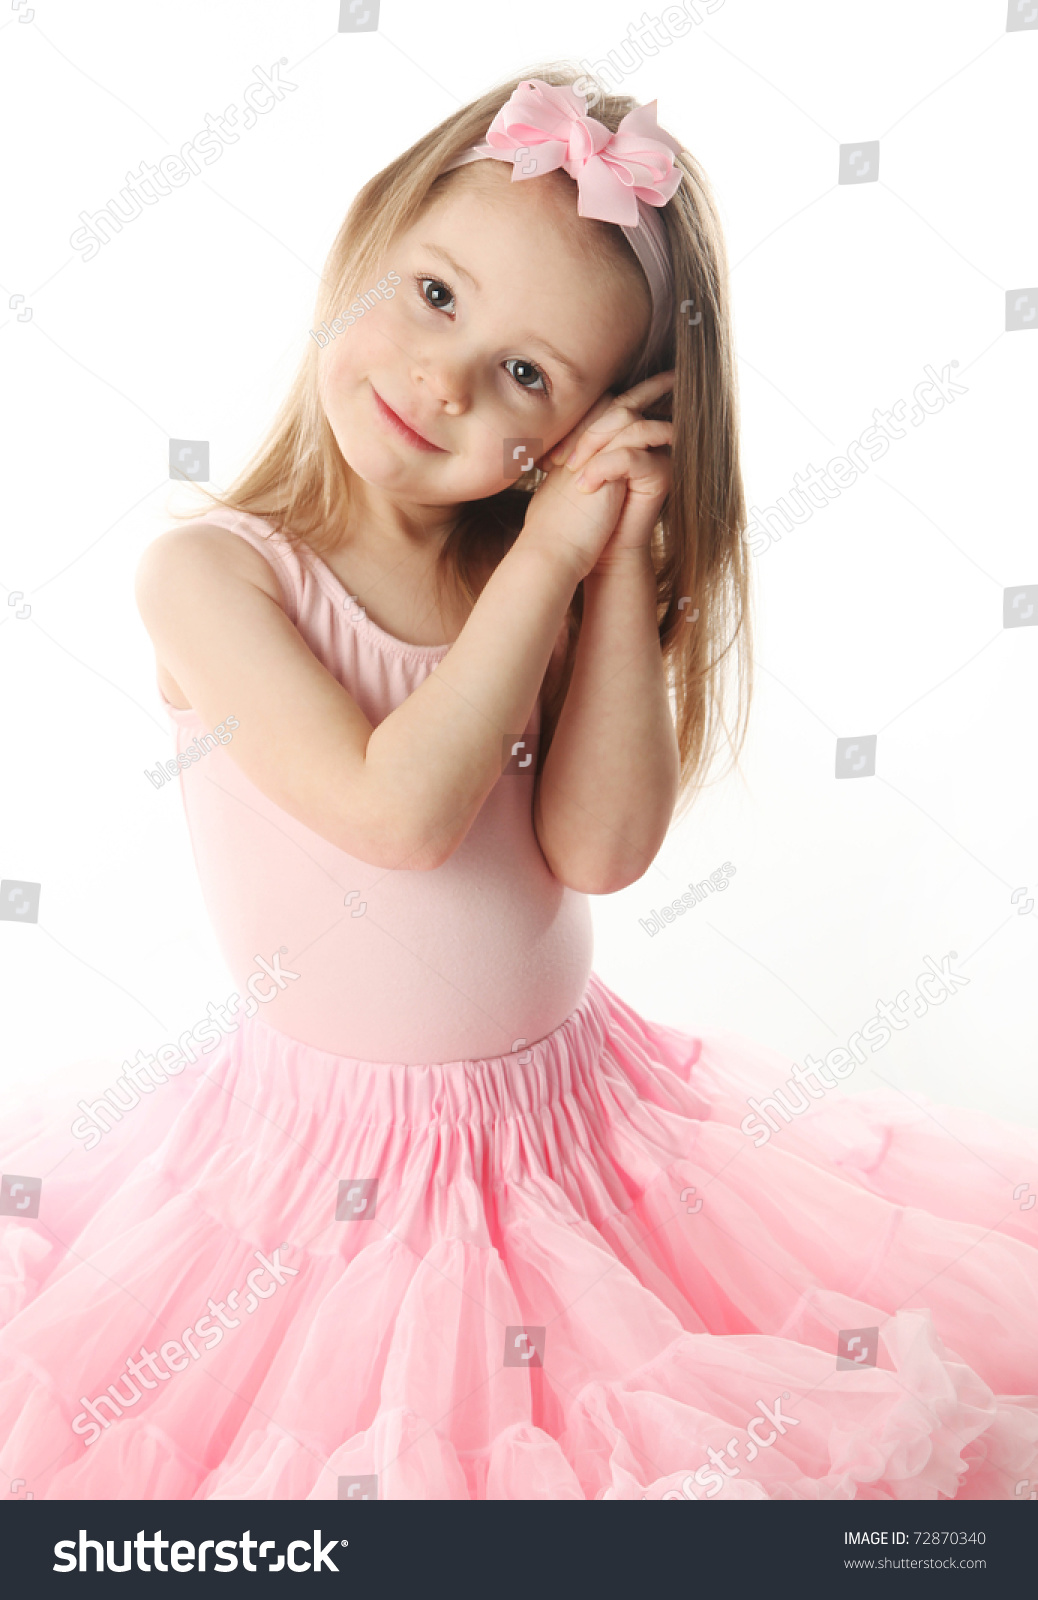 Portrait Of An Adorable Preschool Age Girl Playing Dress